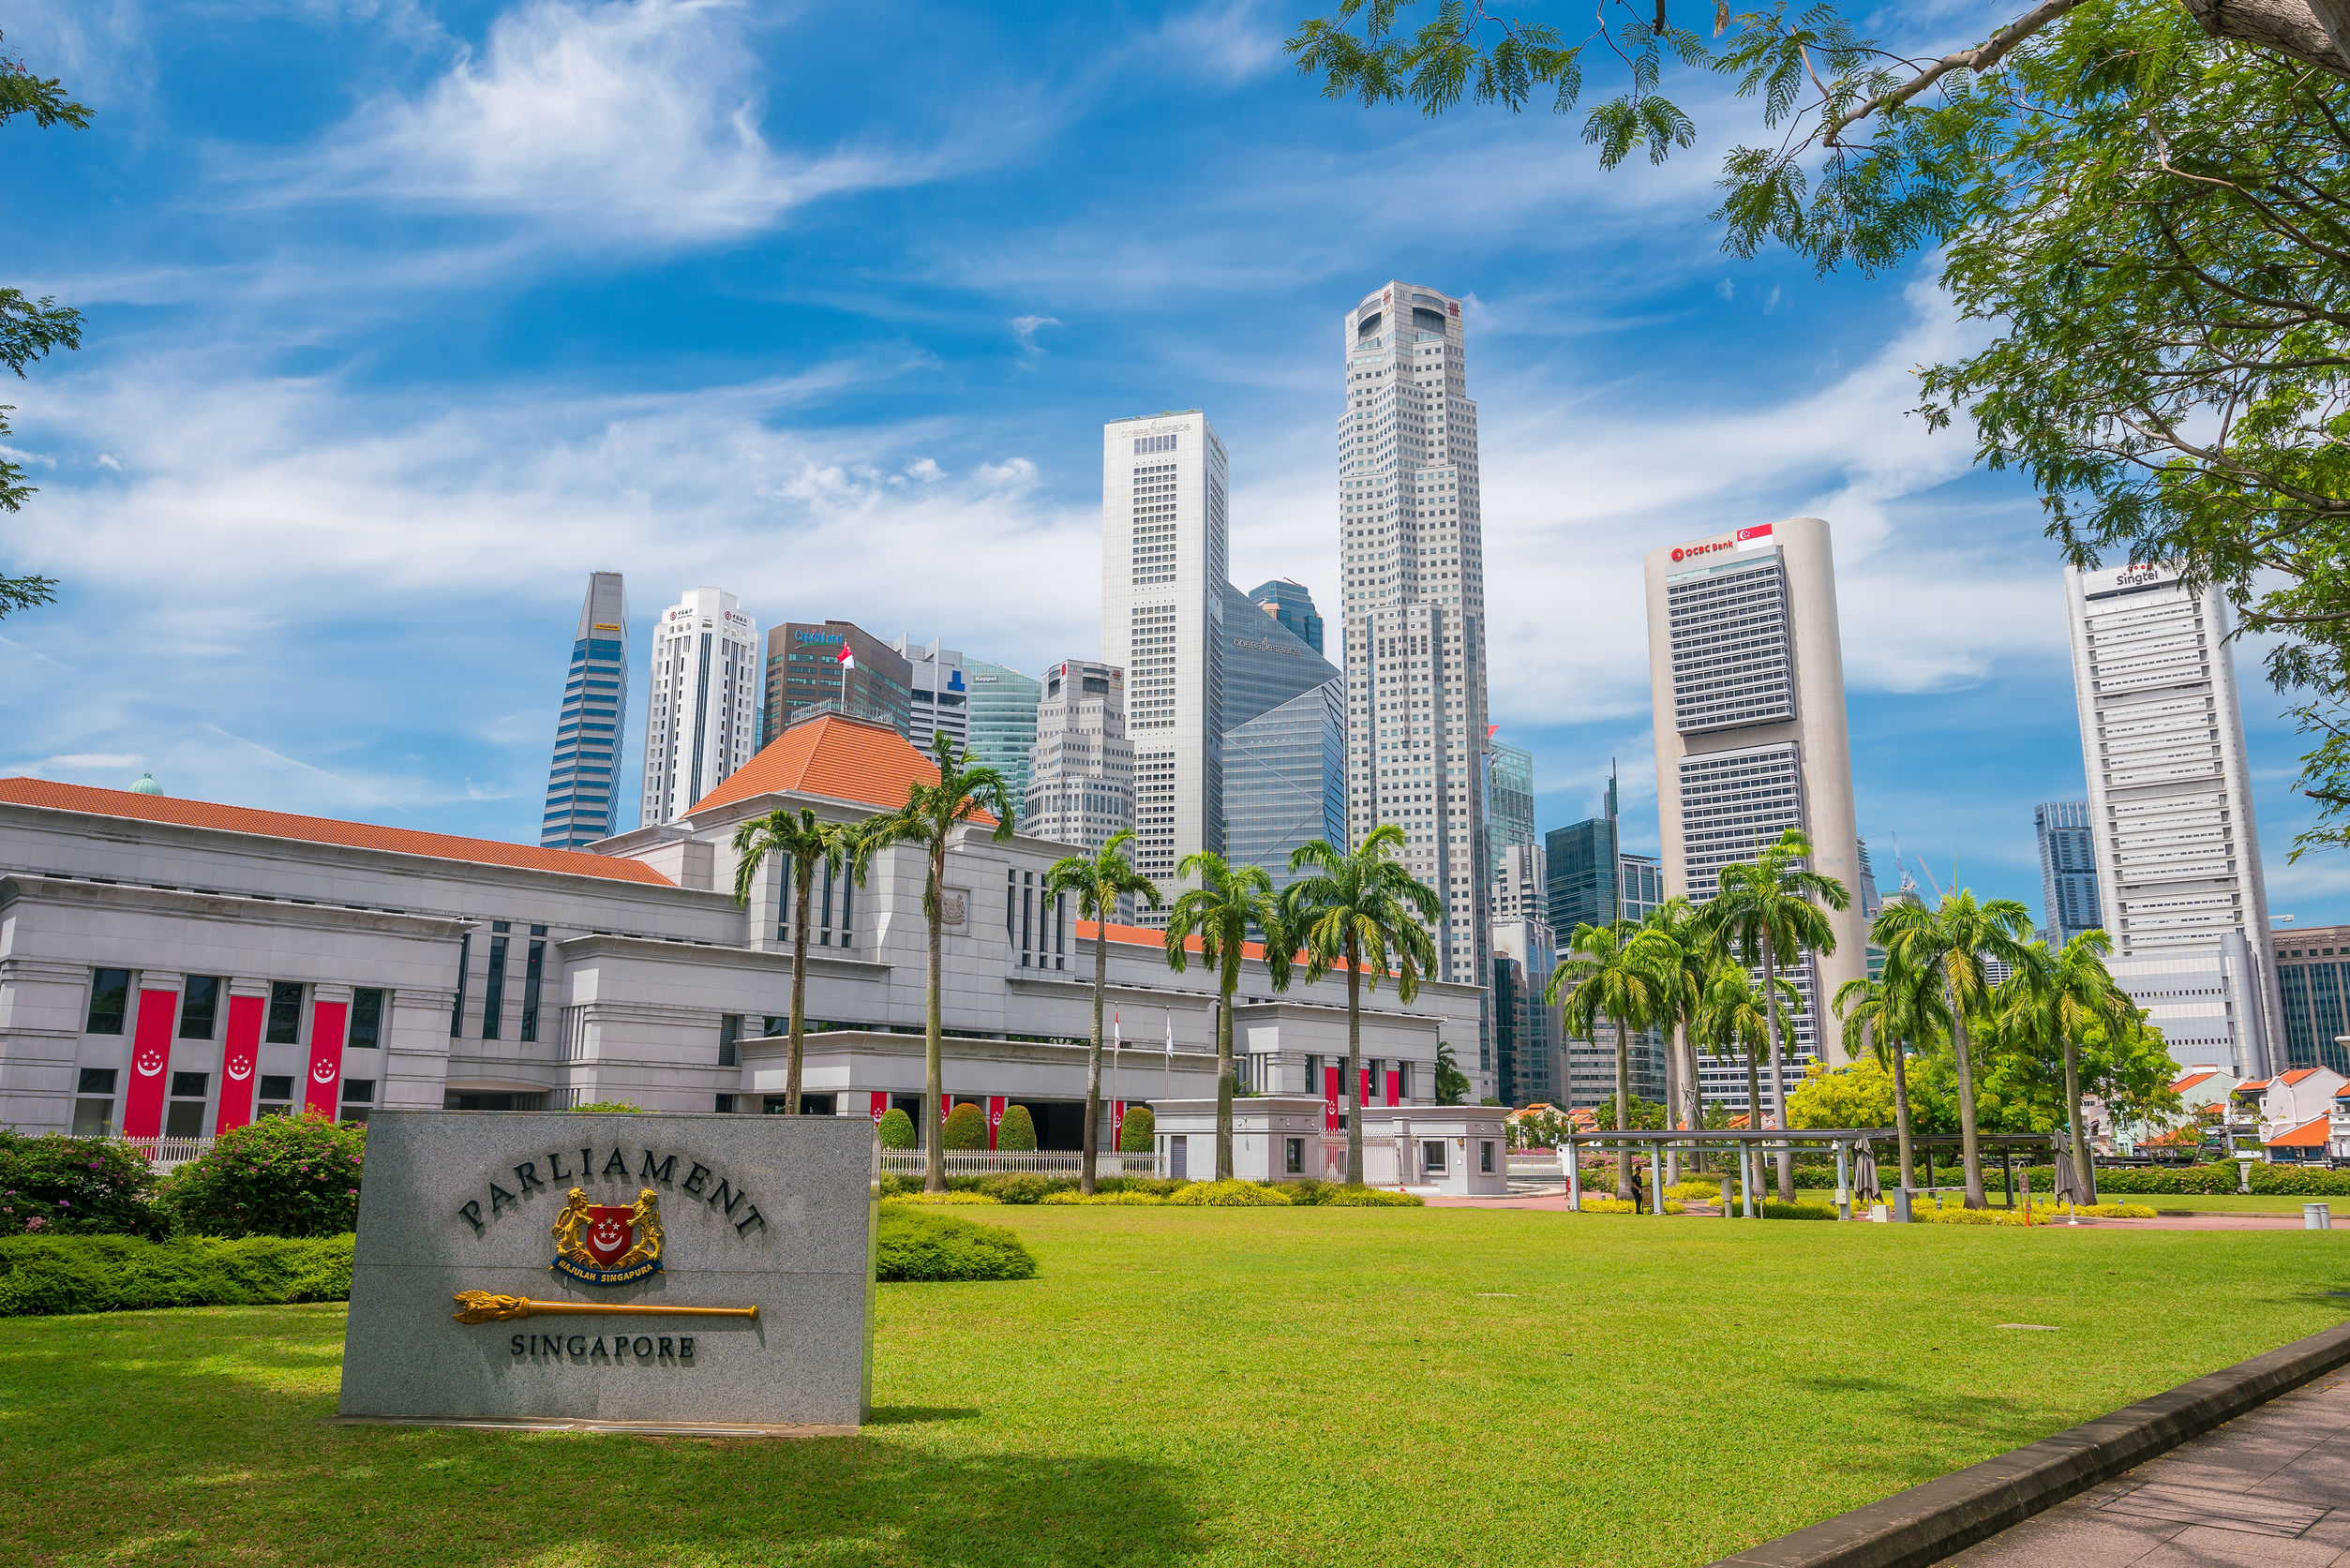 Singapore Budget 2018: Reduced tax breaks for startups, but